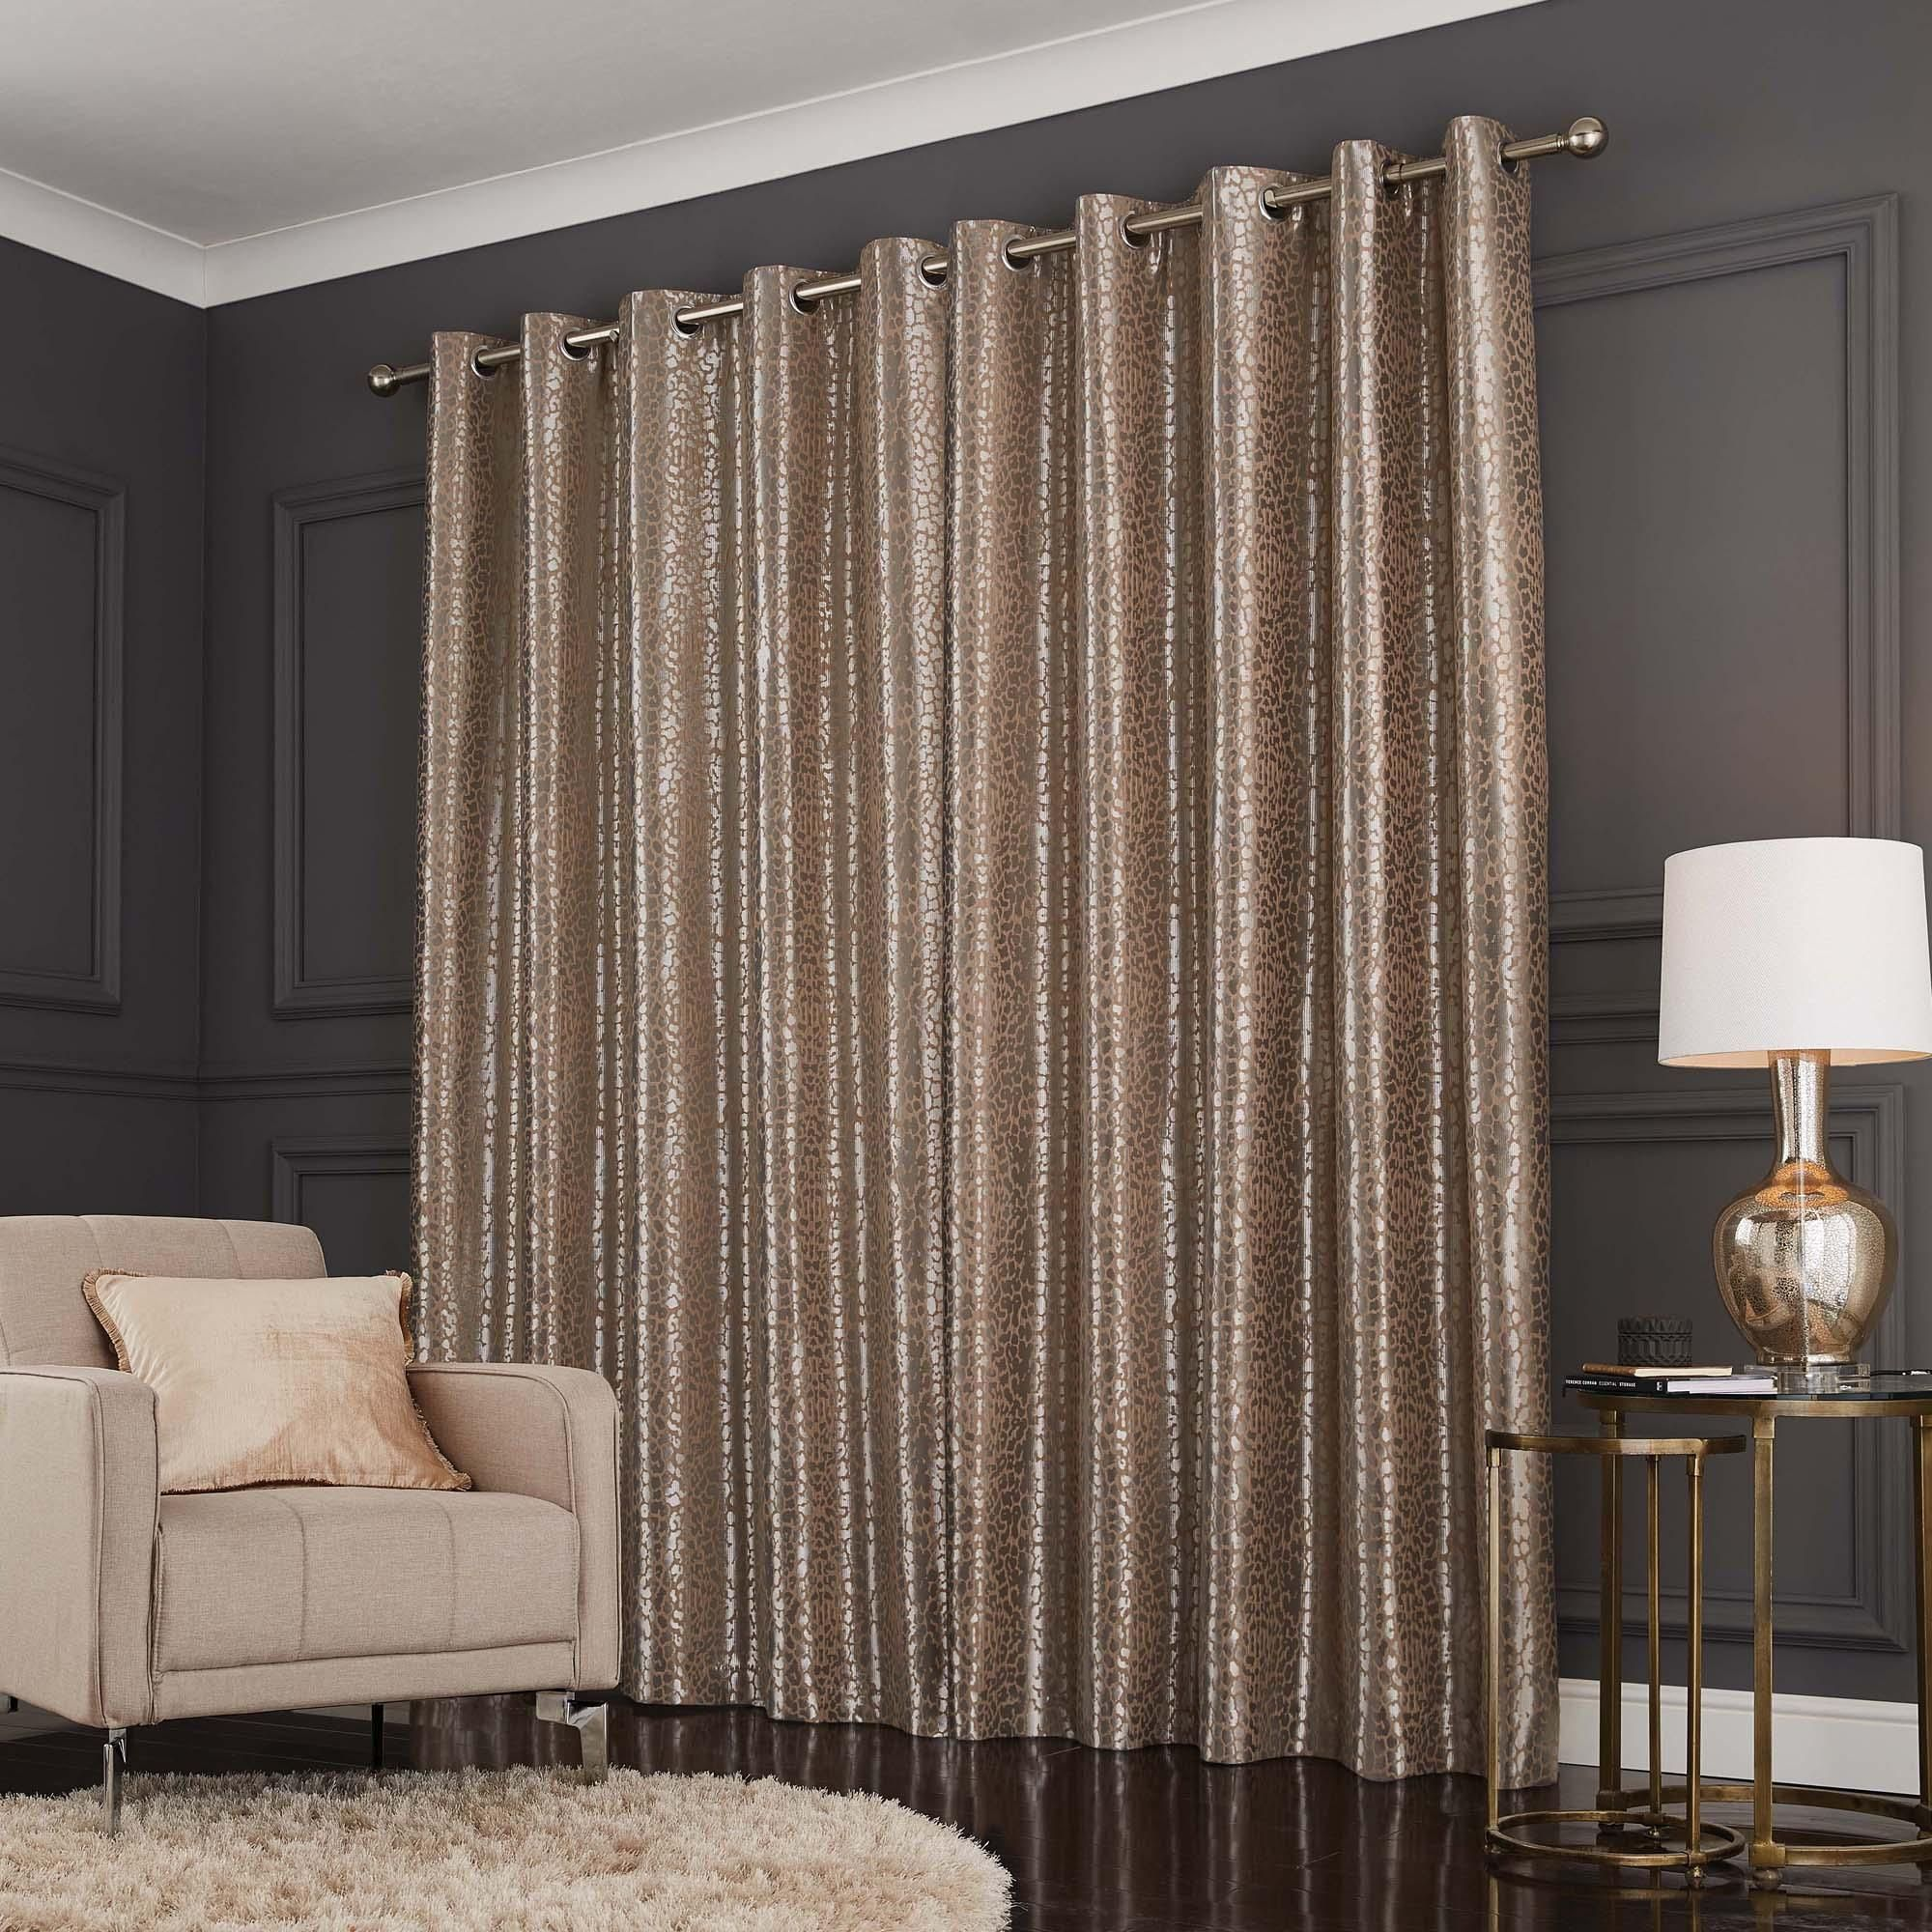 Leopard Natural Jacquard Eyelet Curtains In 2020 Elegant Curtains Curtains Curtains Dunelm